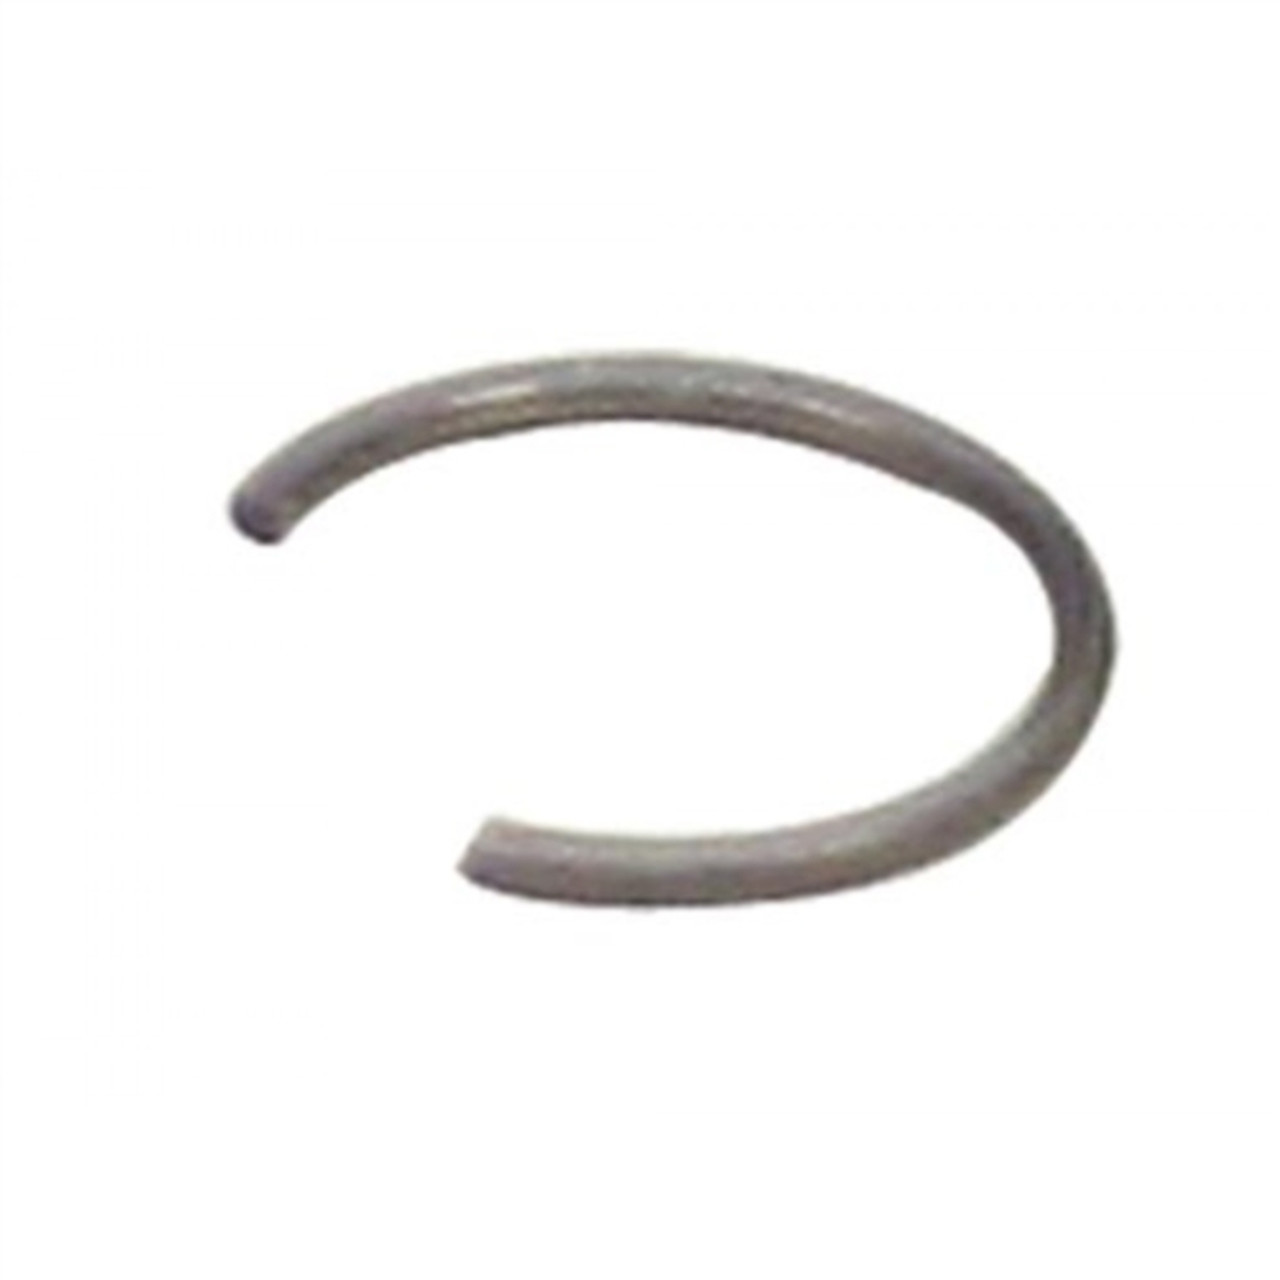 87-3168-0 OUTBRD SNAP RING(WIRE)(10)